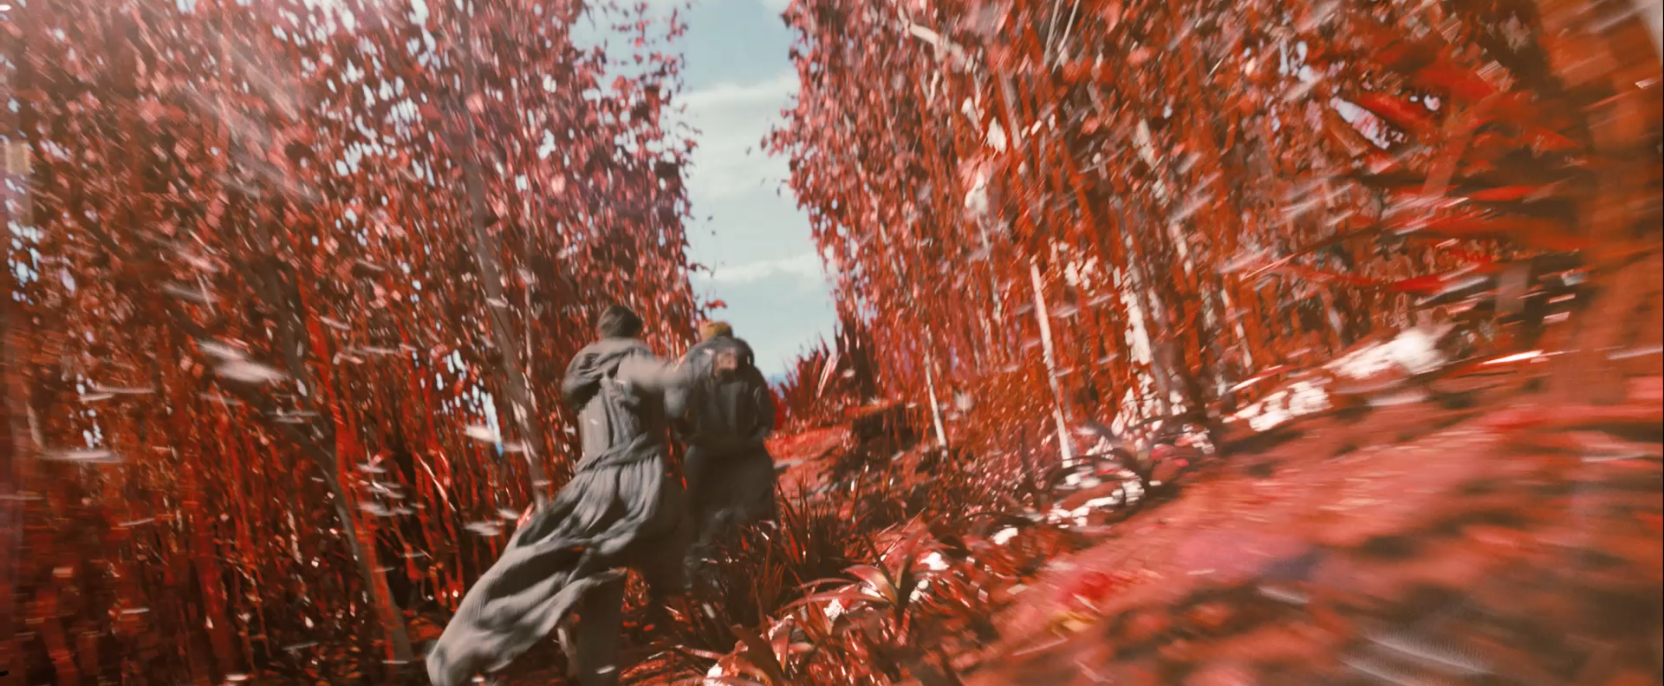 Spock and Kirk running through a red forest - Star Trek Into Darkness